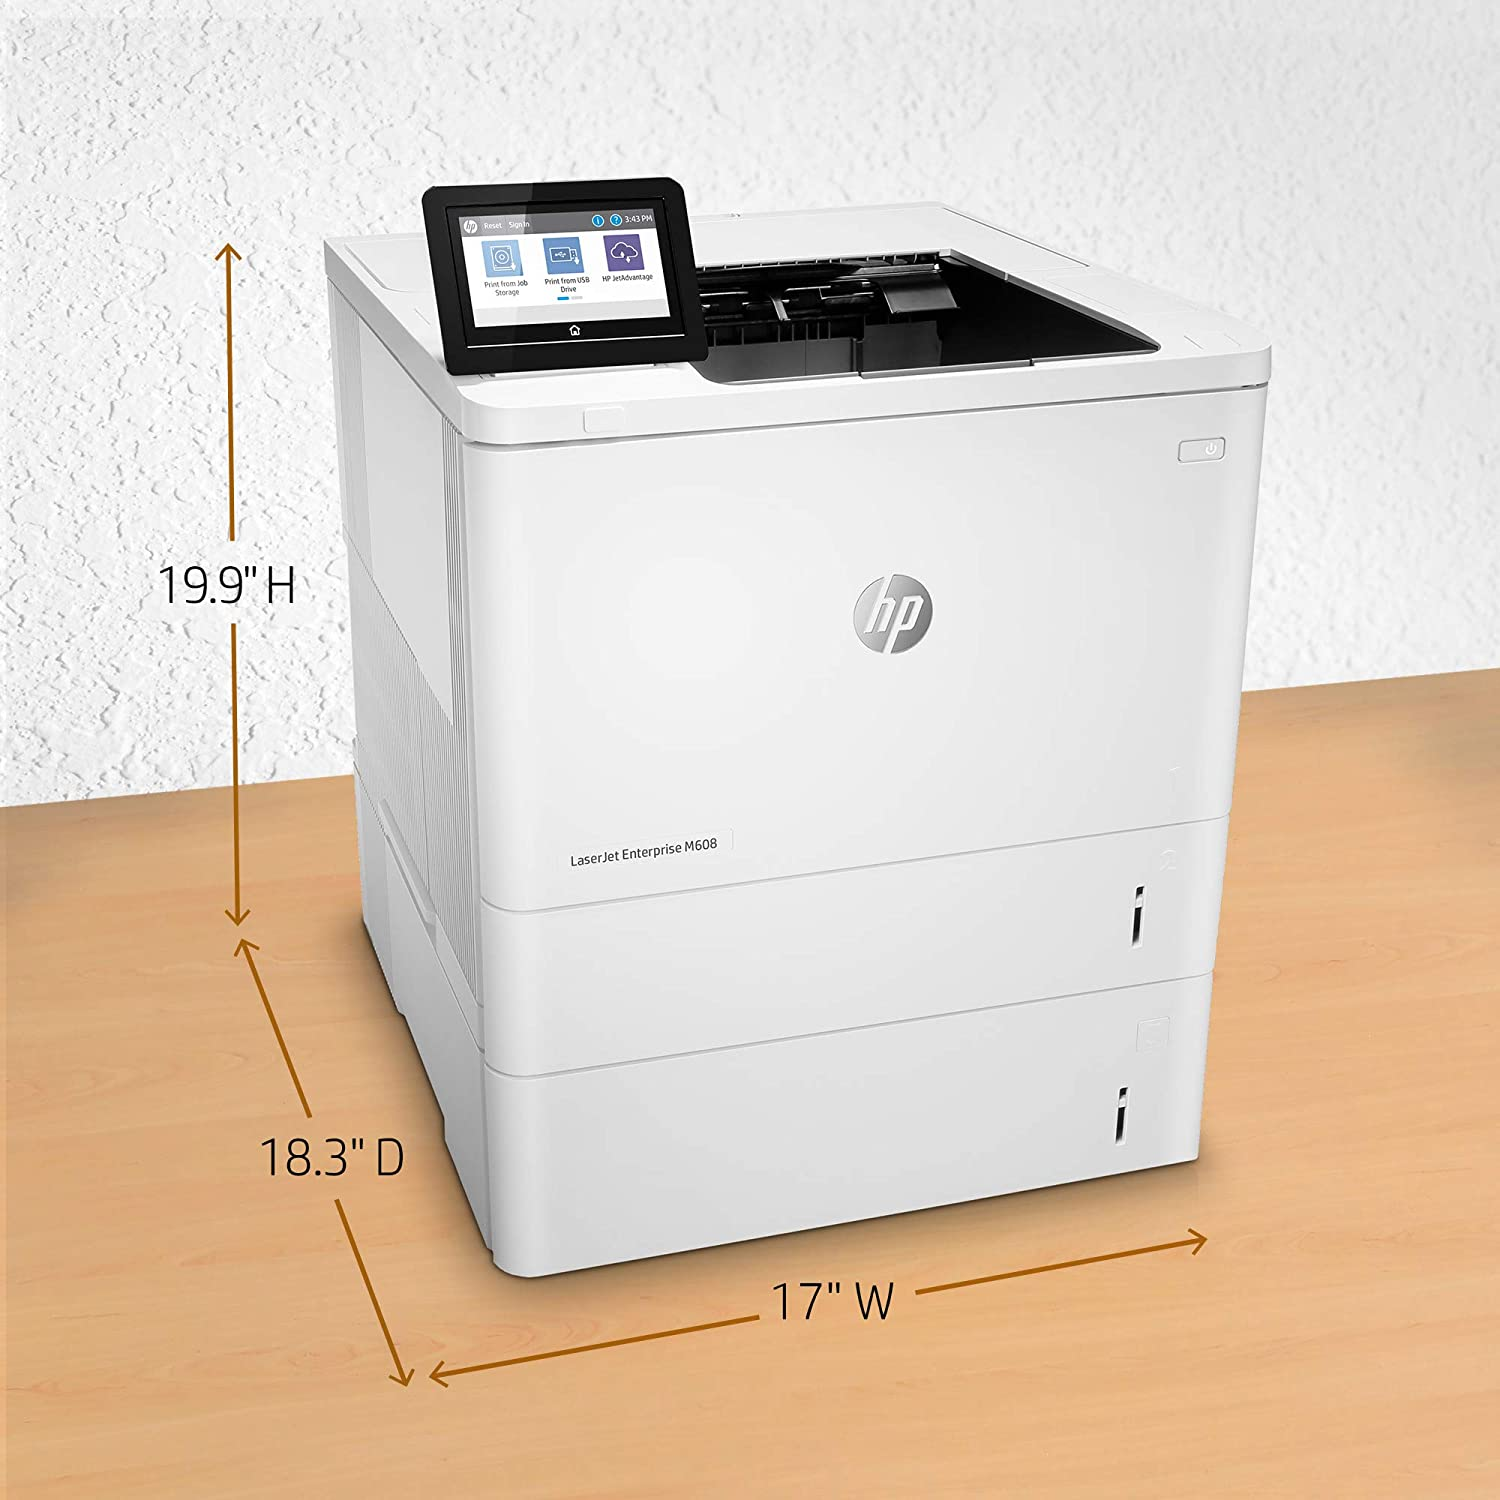 LaserJet Enterprise M608x